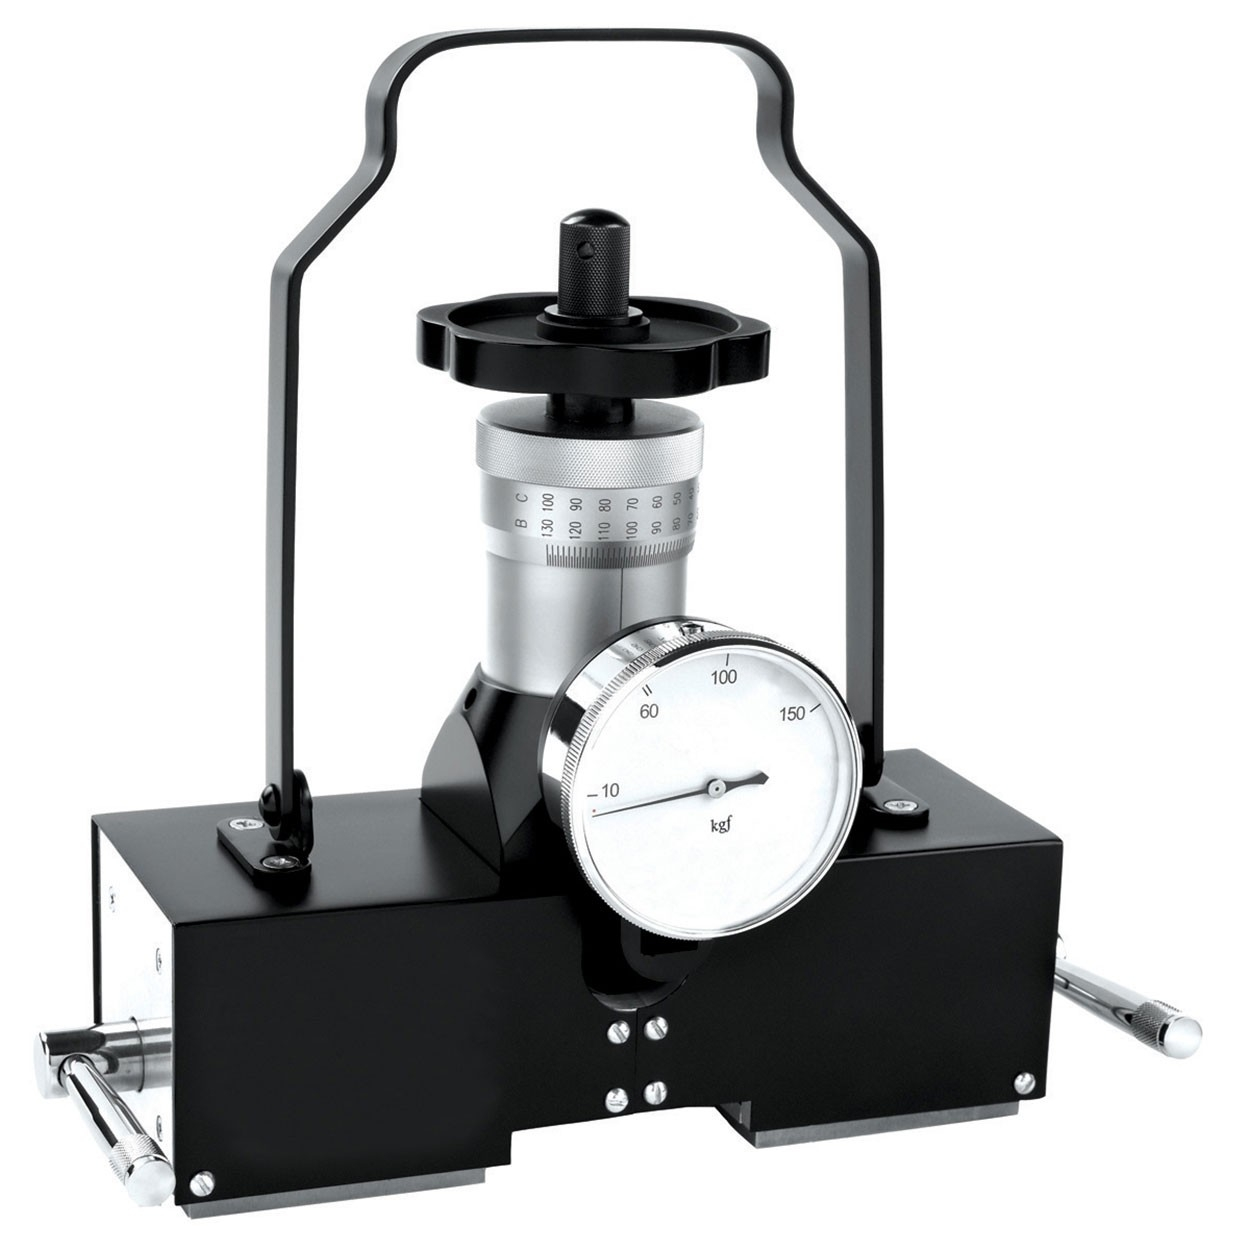 BOWERS W-INMR/01 MAGNETIC PORTABLE ROCKWELL HARDNESS TESTER - ANALOGUE.